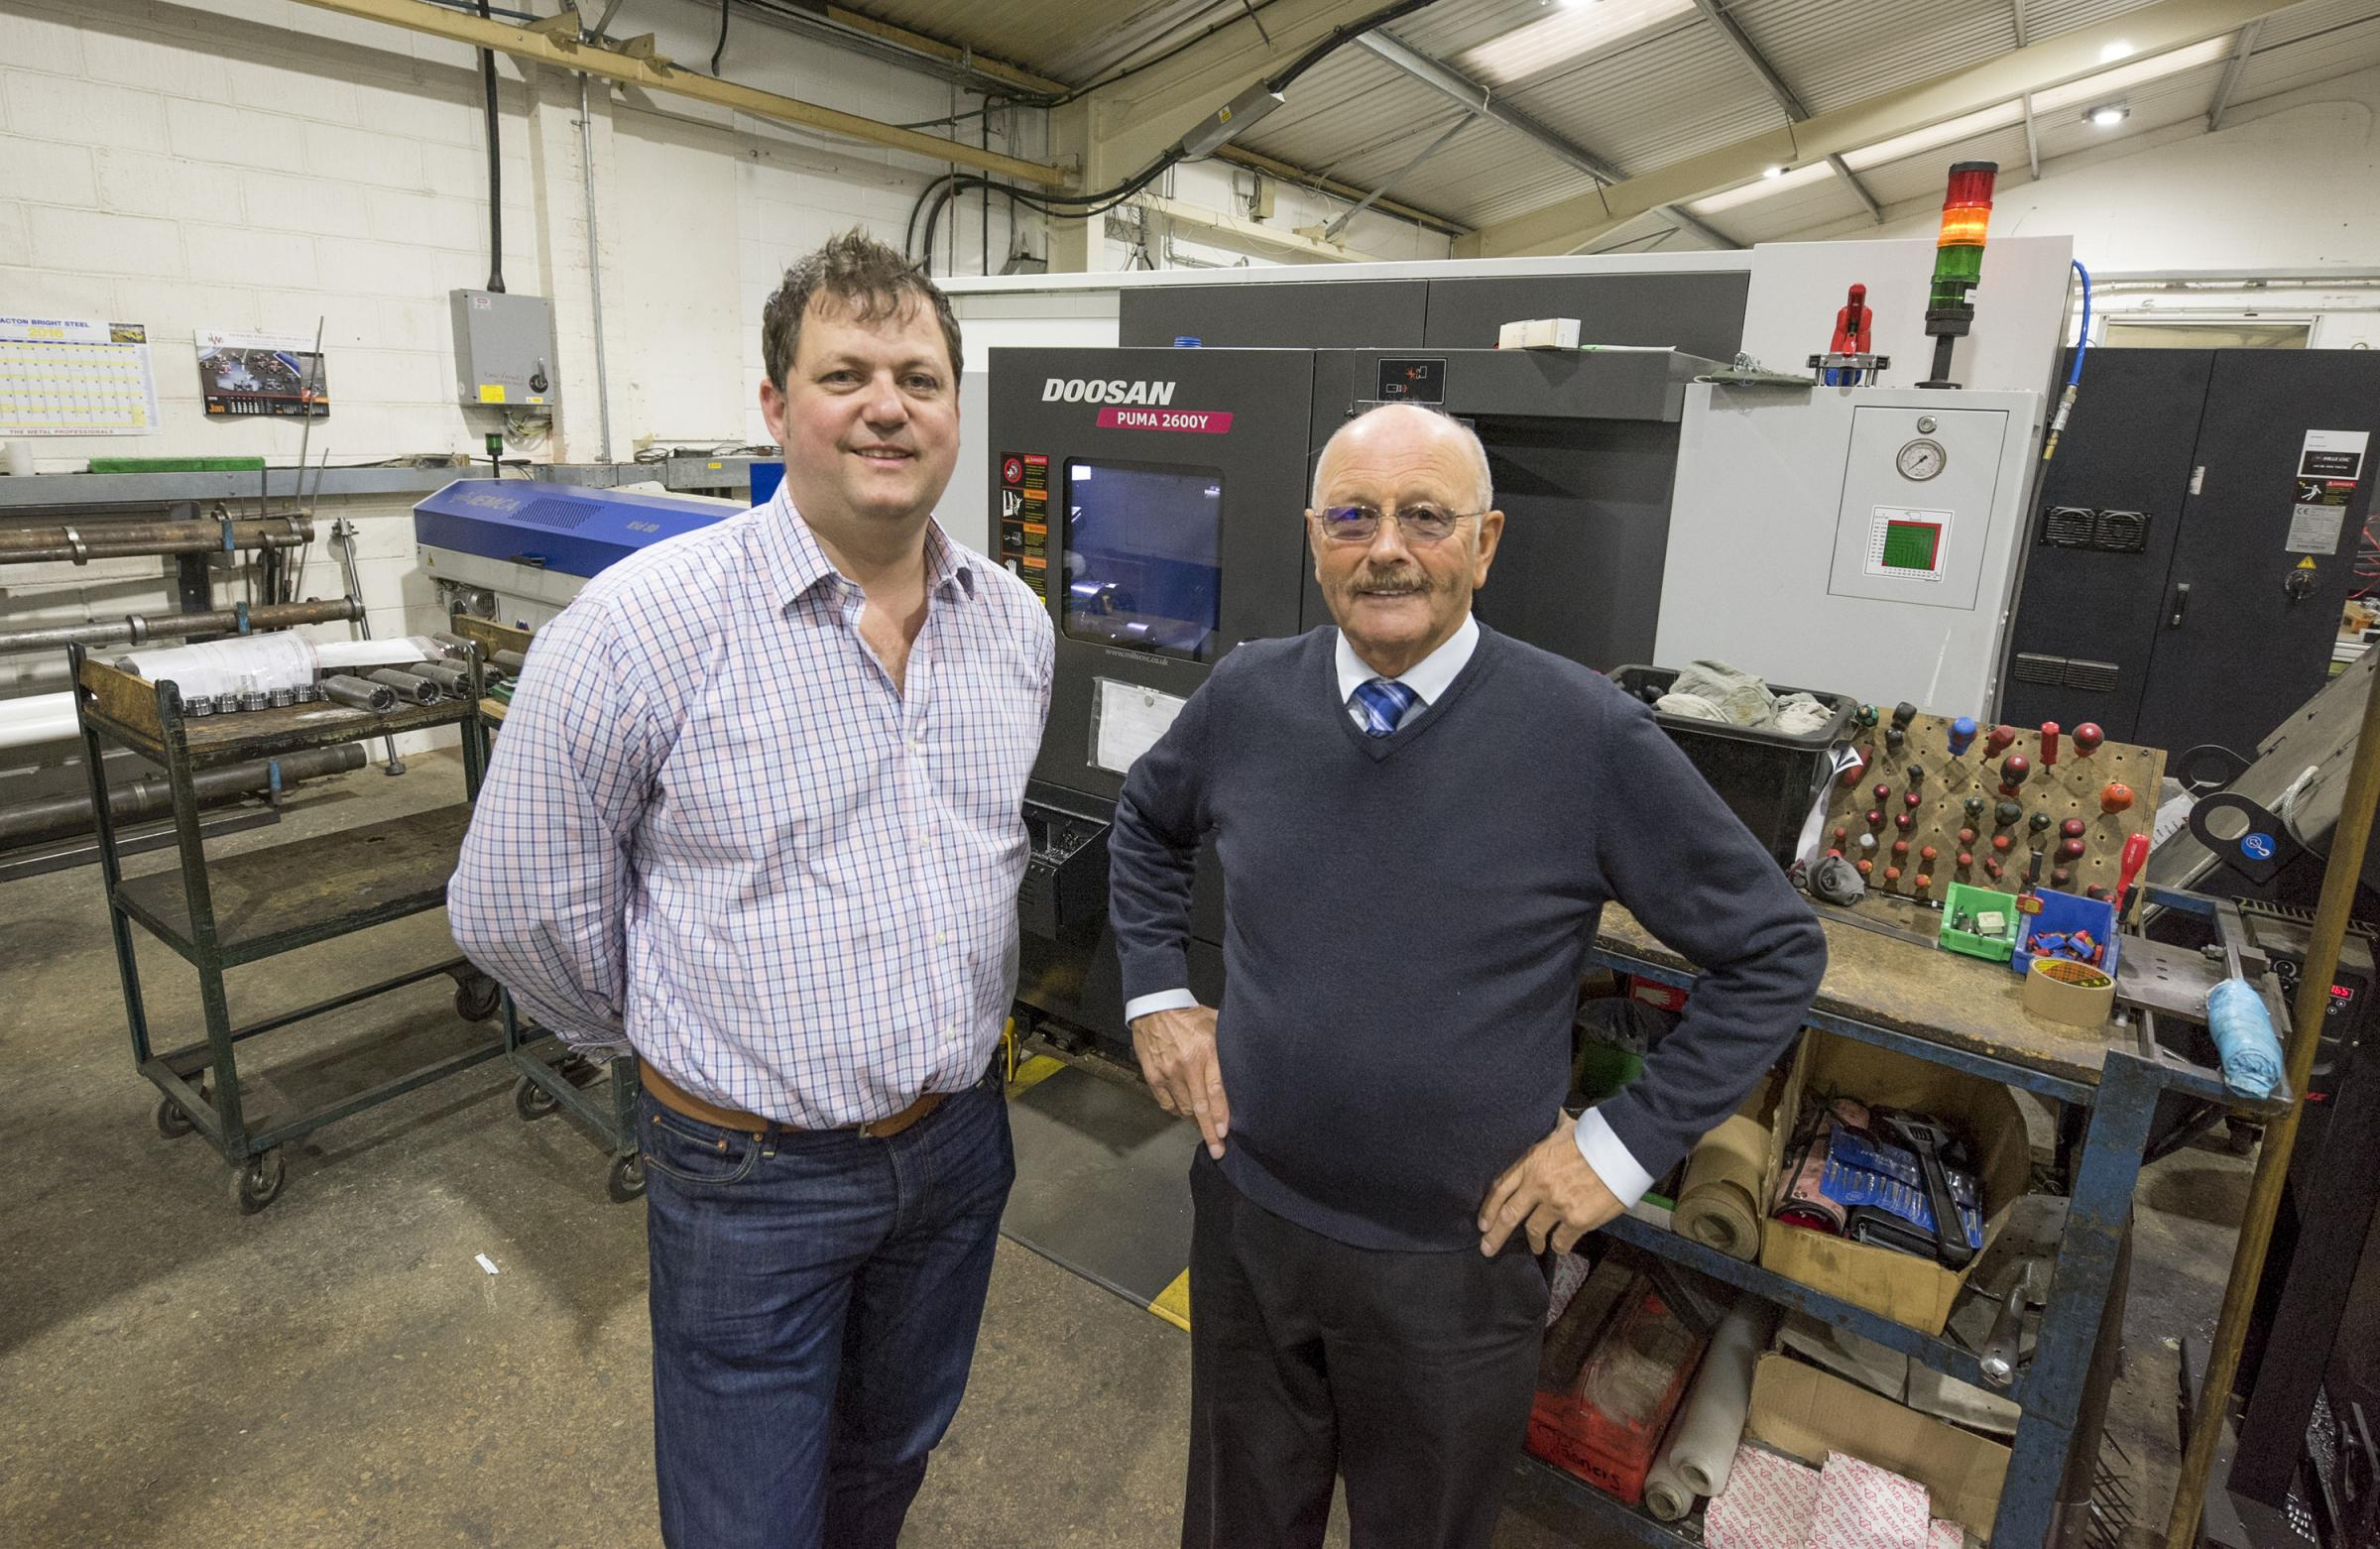 FAMILY AFFAIR: Jason Hydraulics managing director Conrad Edwards, left, with father and company chairman Fred Edwards, who founded the company in 1968 Picture: Christina Morris